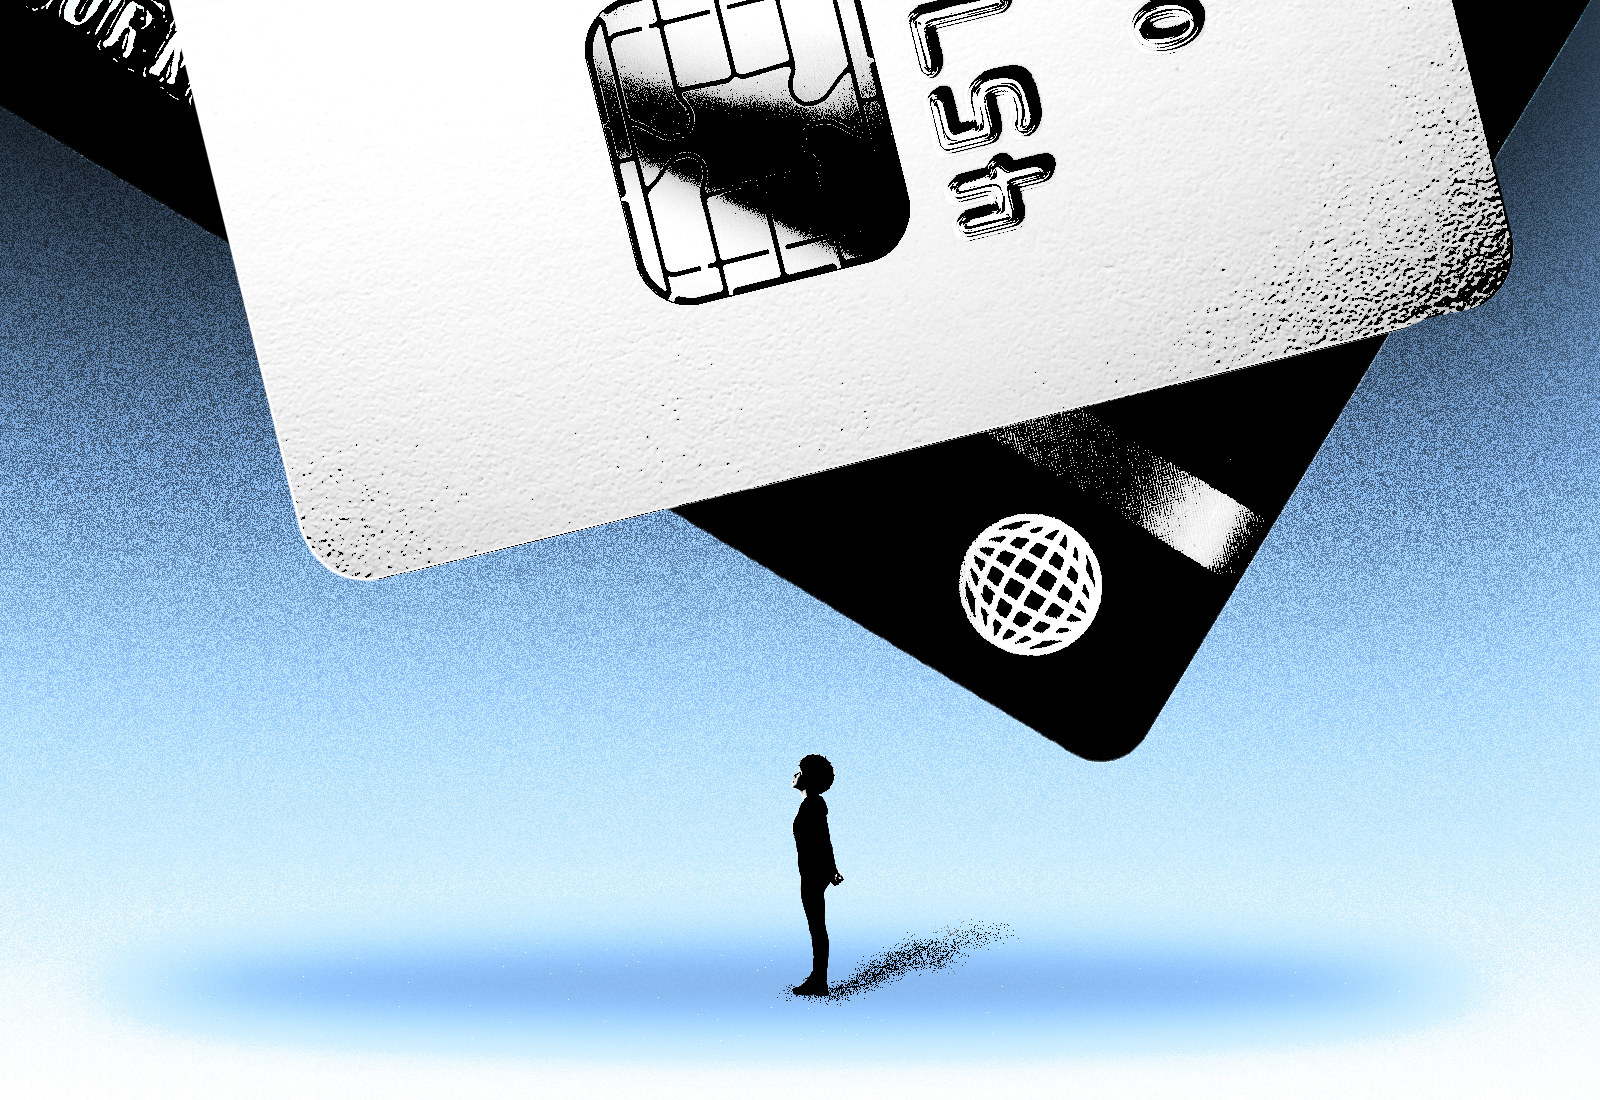 An illustration shows a person standing under massive credit cards that appear to be falling on them